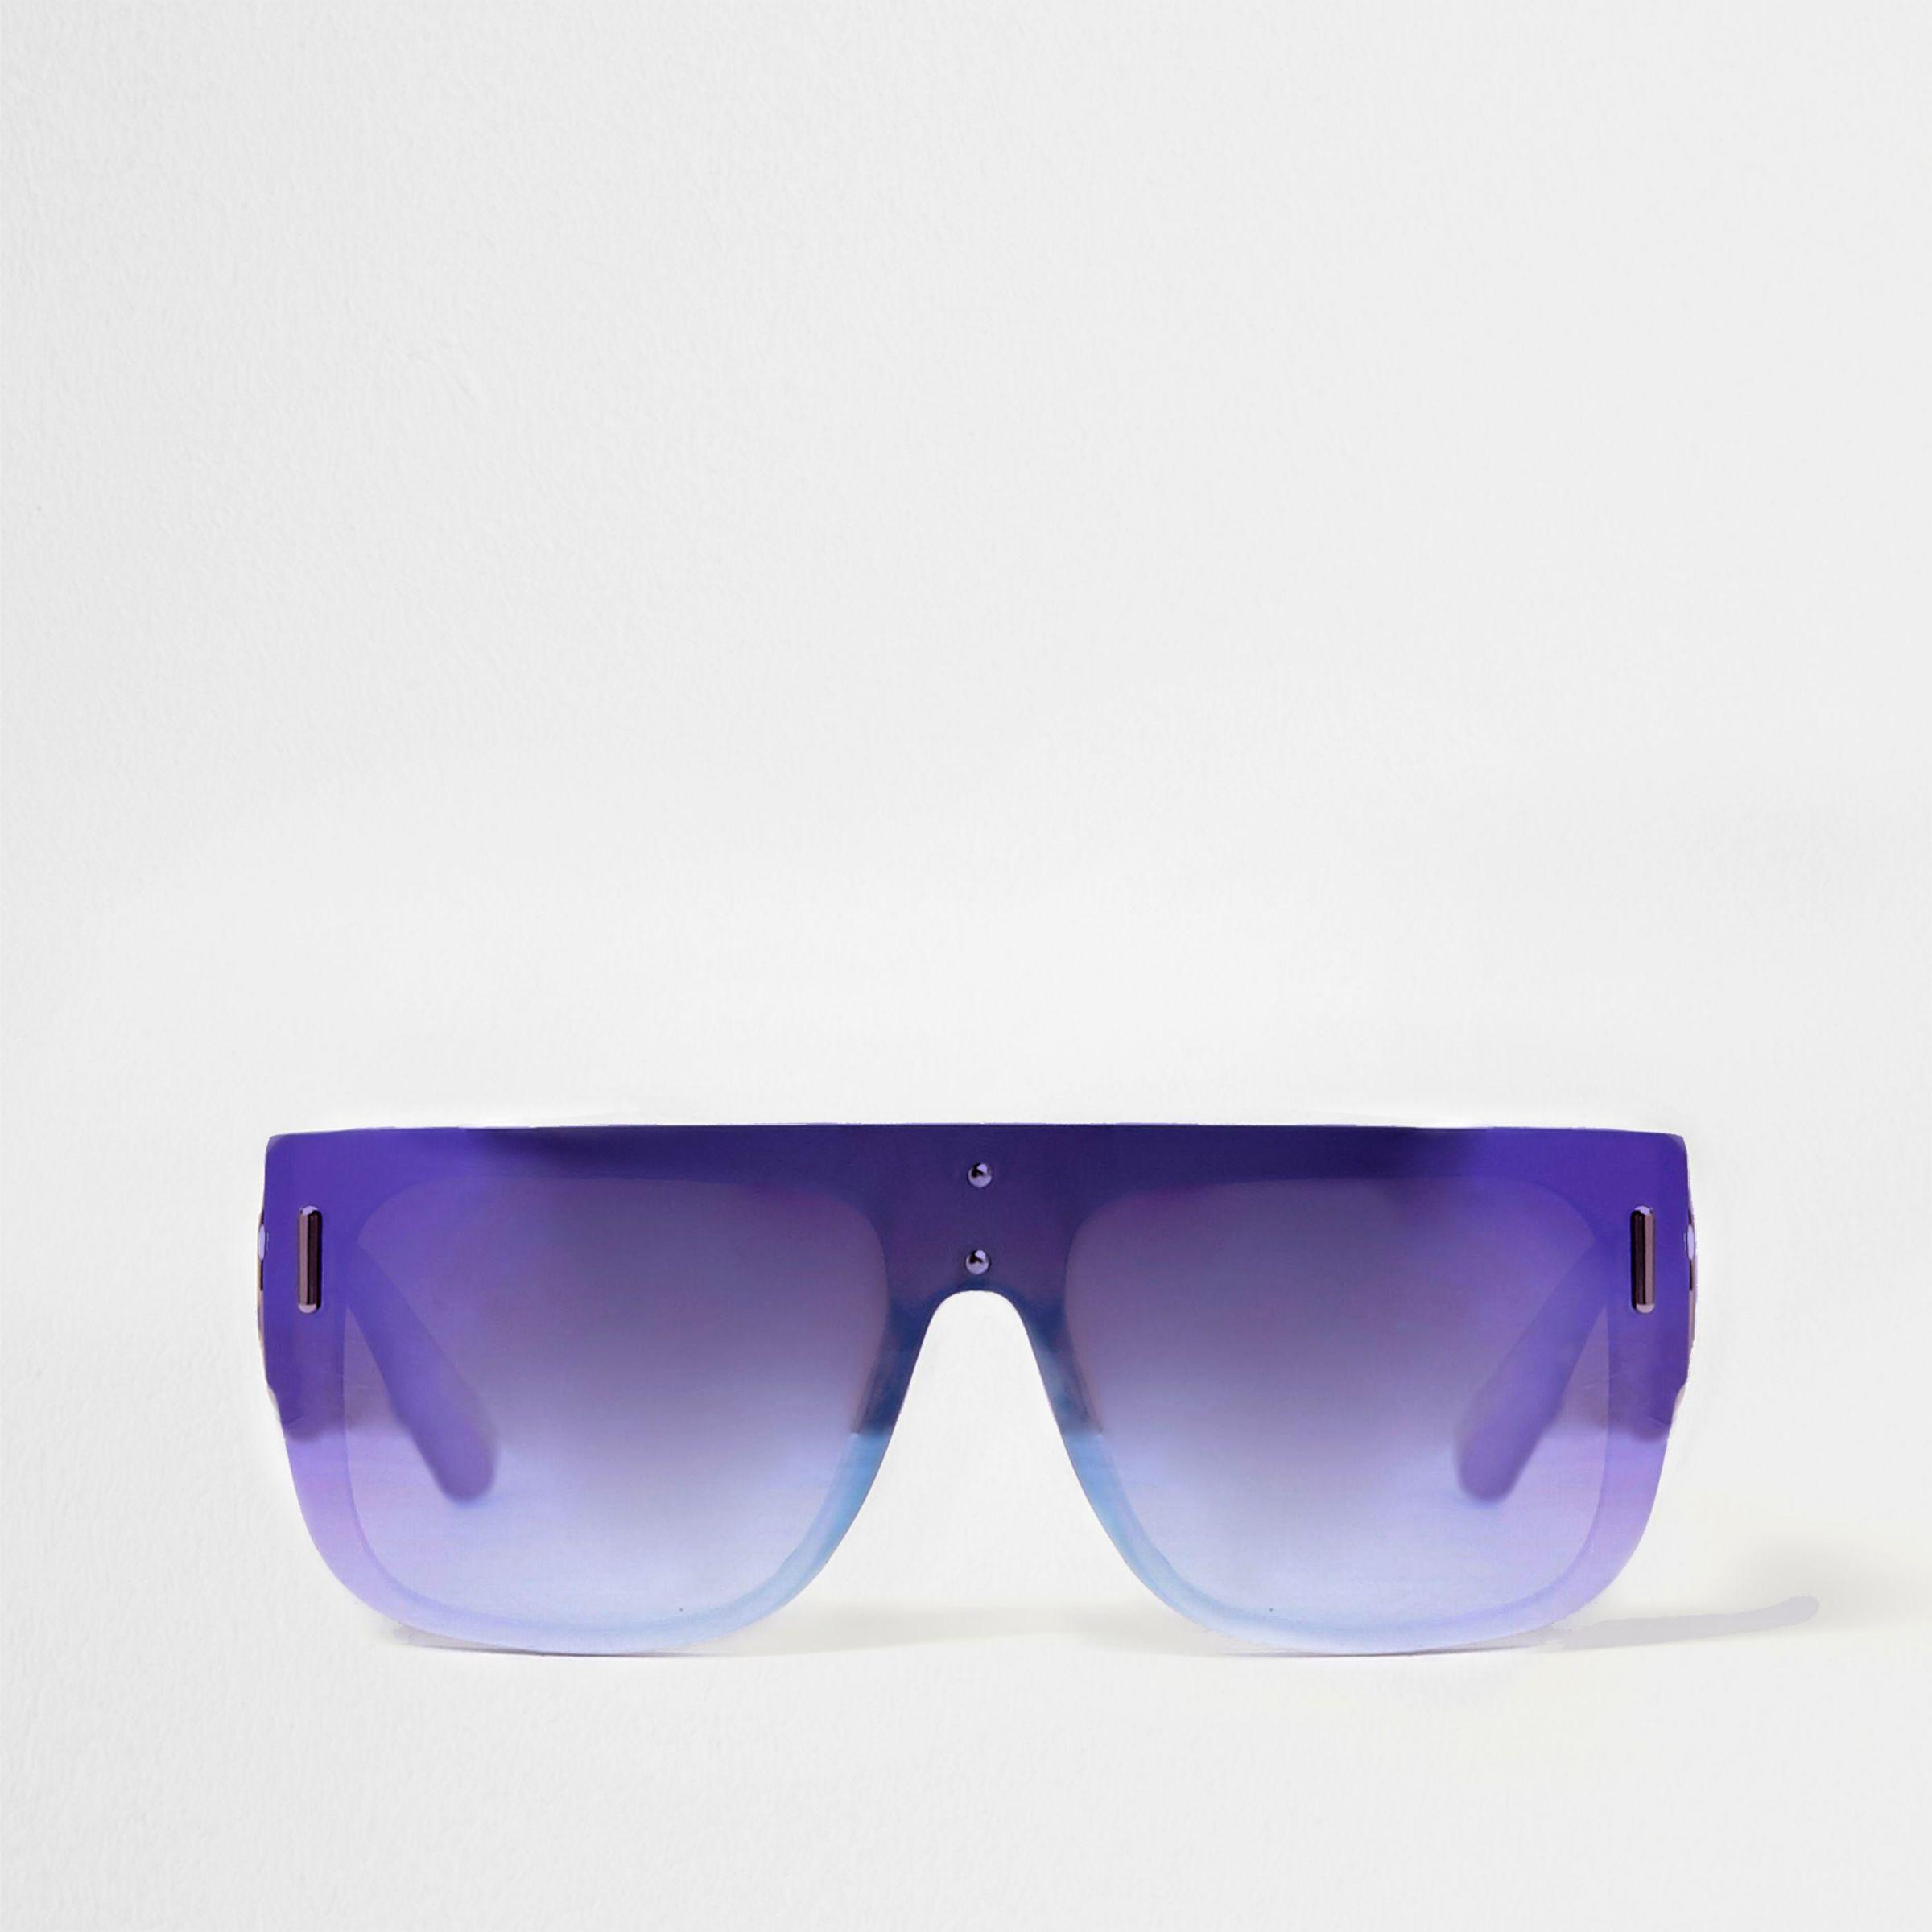 River Island Womens mirrored lens flat top sunglasses Sale Pay With Paypal VdW9FW4d72